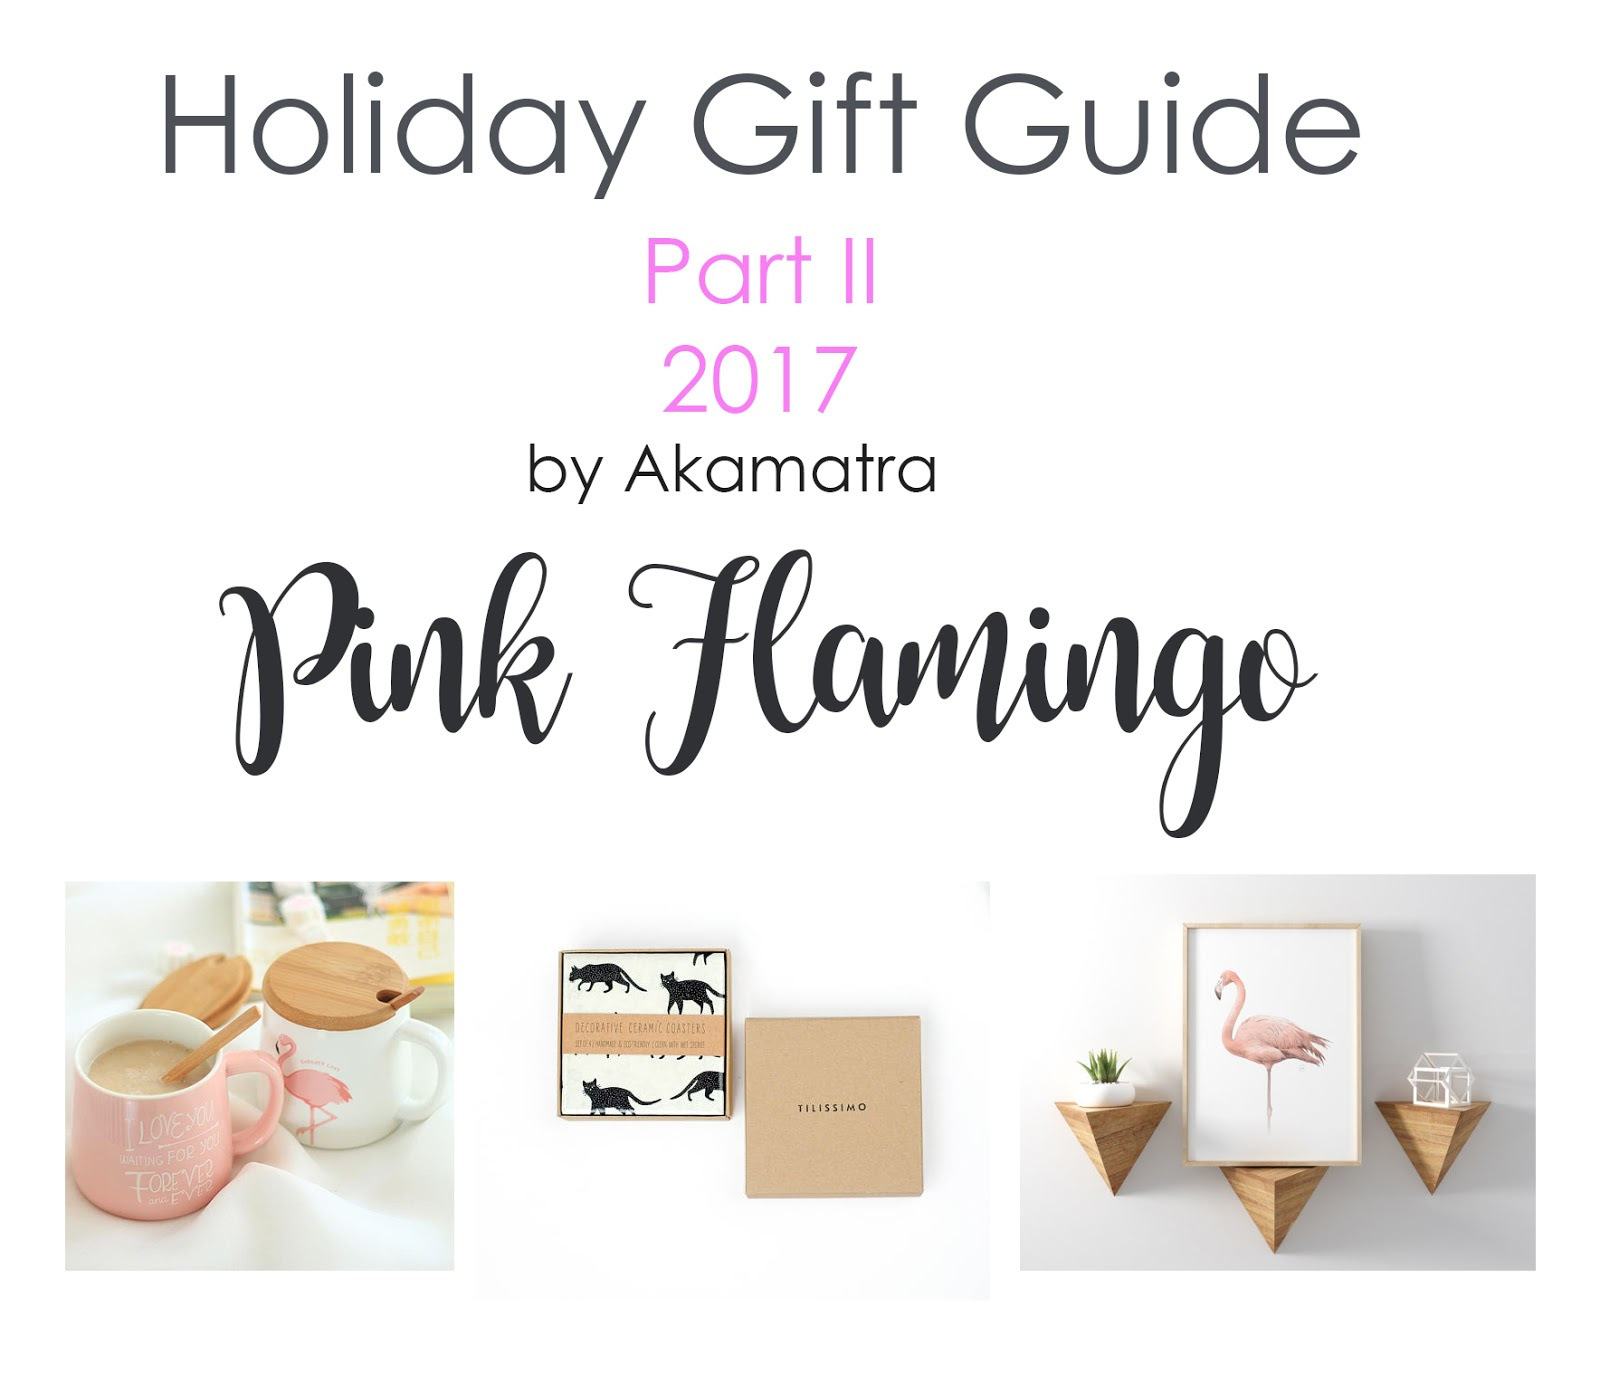 2017 Holiday Gift Guide part II. The pink flamingo factor